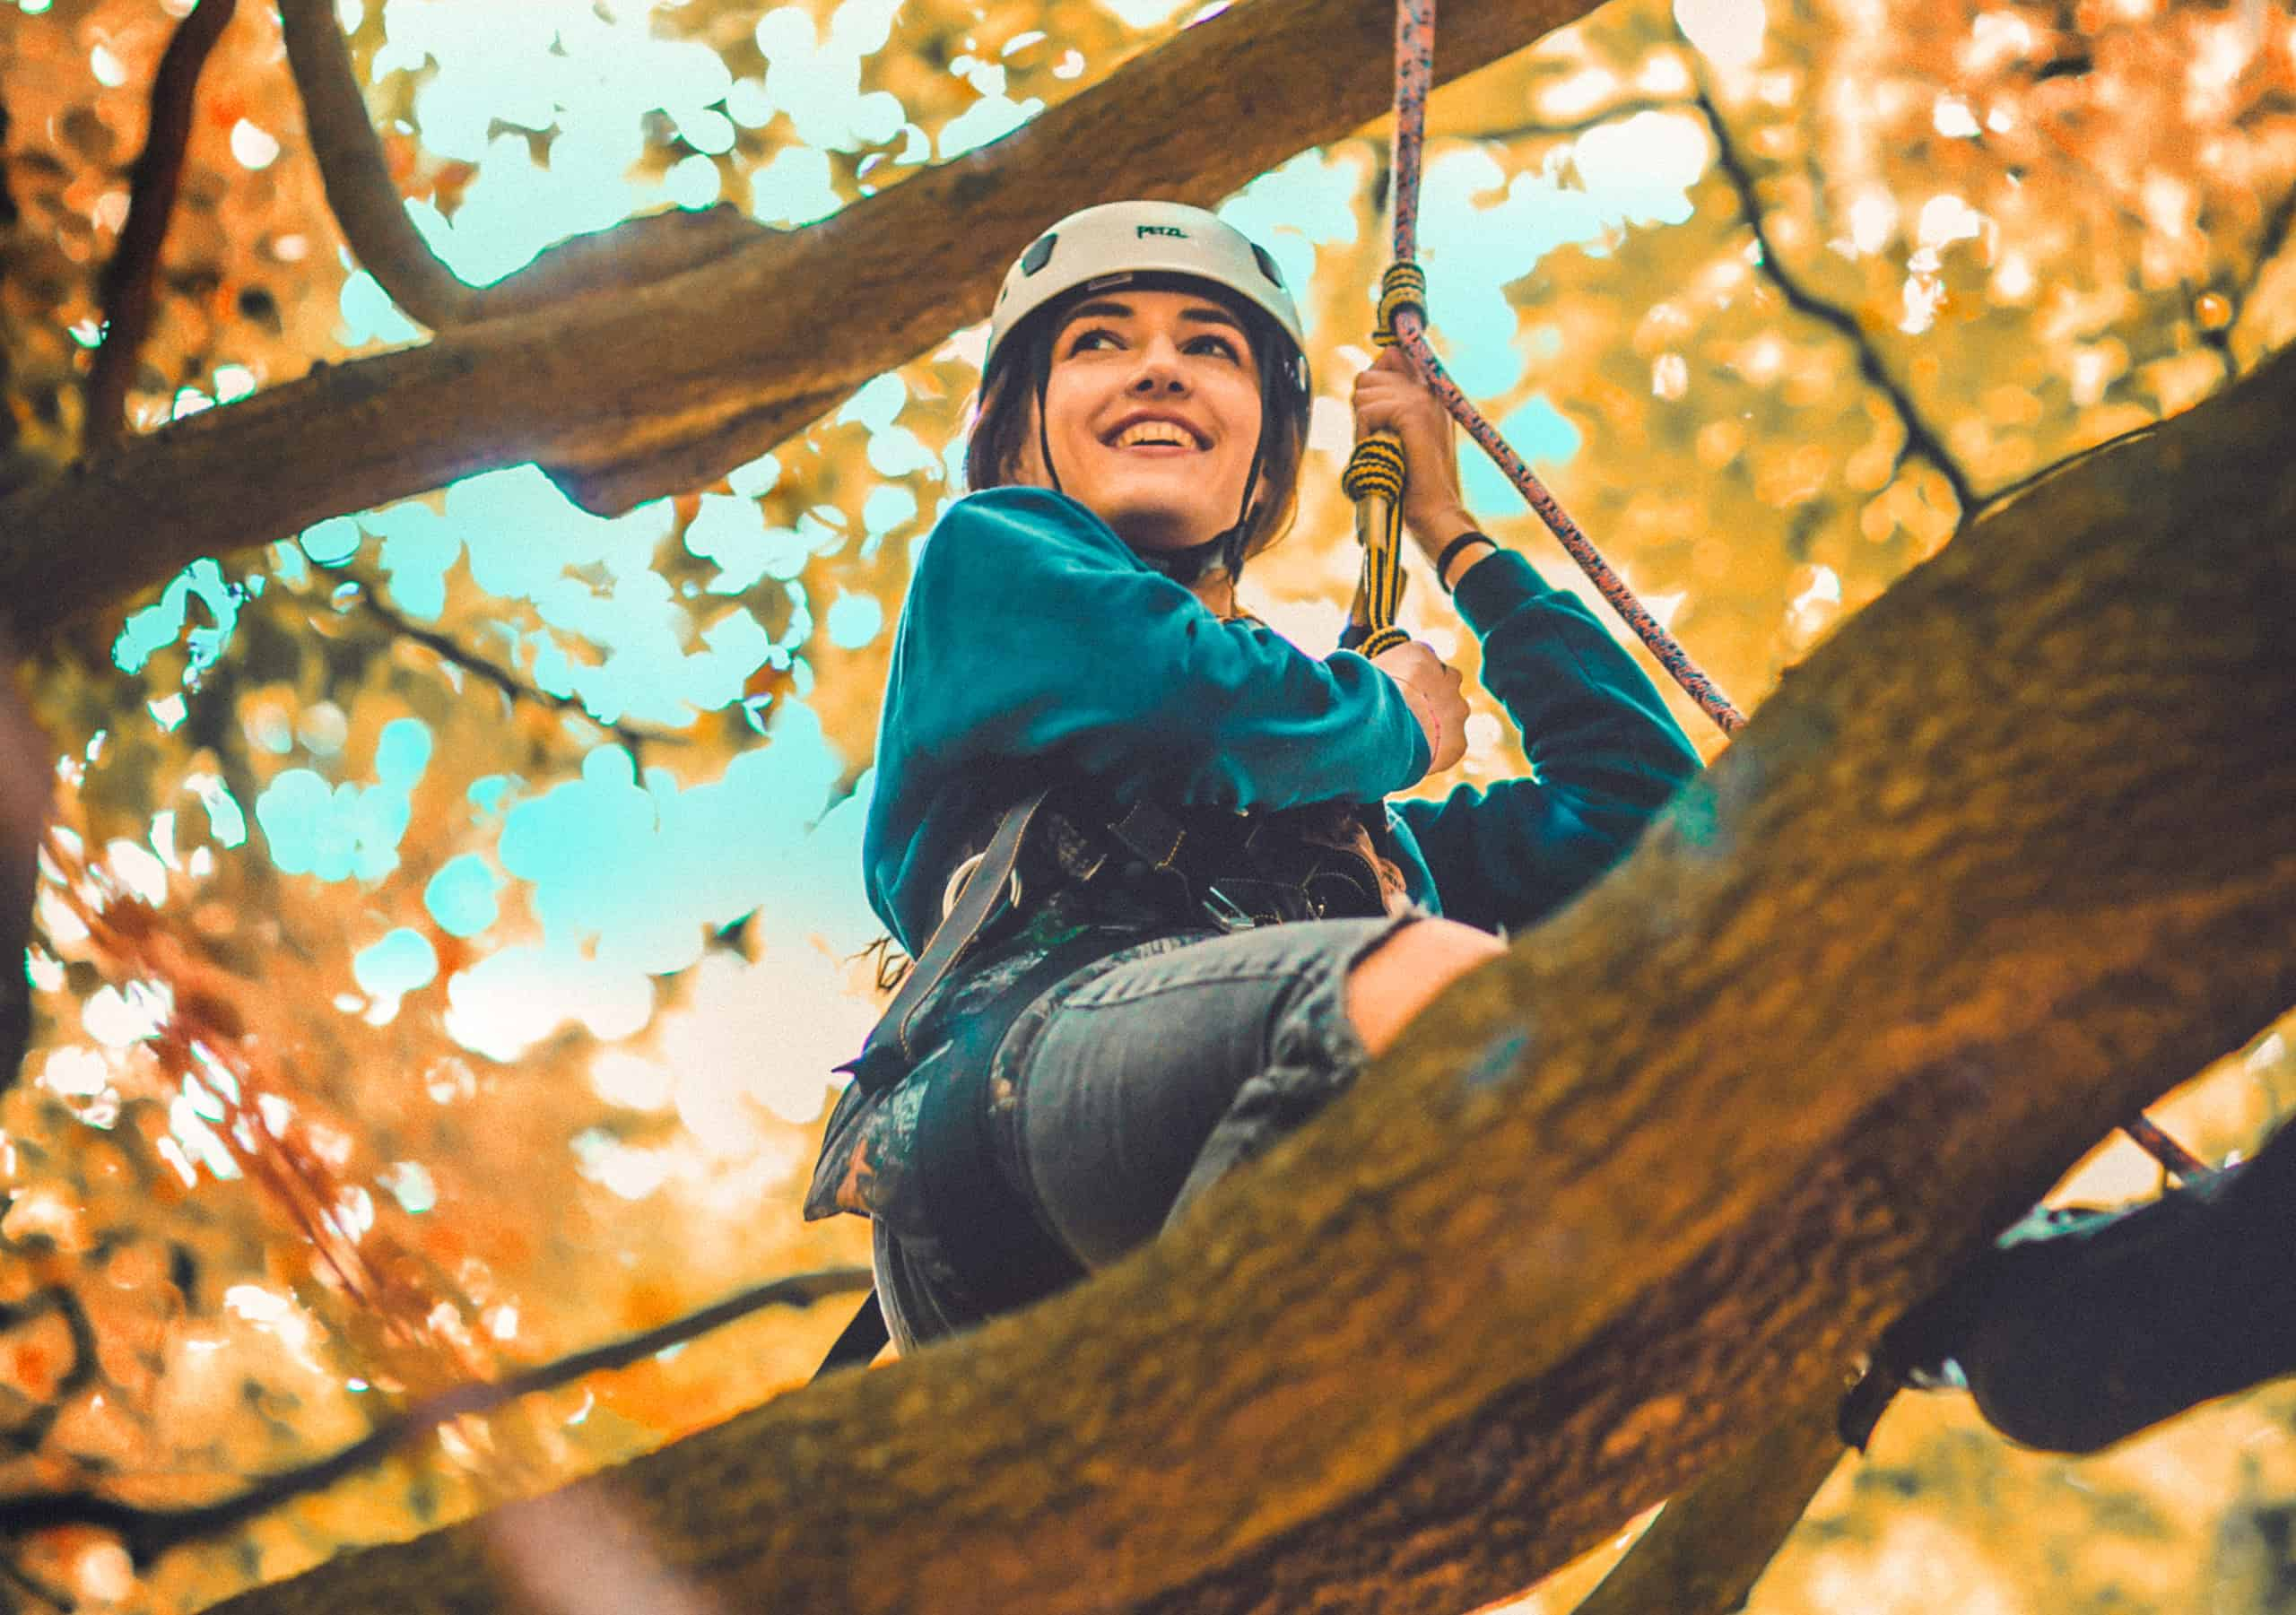 Girl wearing helmet climbing trees at Camp Wildfire. The UK's Best Alternative Festival. UK's Top Unique Event. A summer weekend break in a forest near London and Kent. An outdoor woodland retreat featuring adventure activities, live music, DJs, parties and camping. Half summer adventure activity camp, half music festival, for adults only.